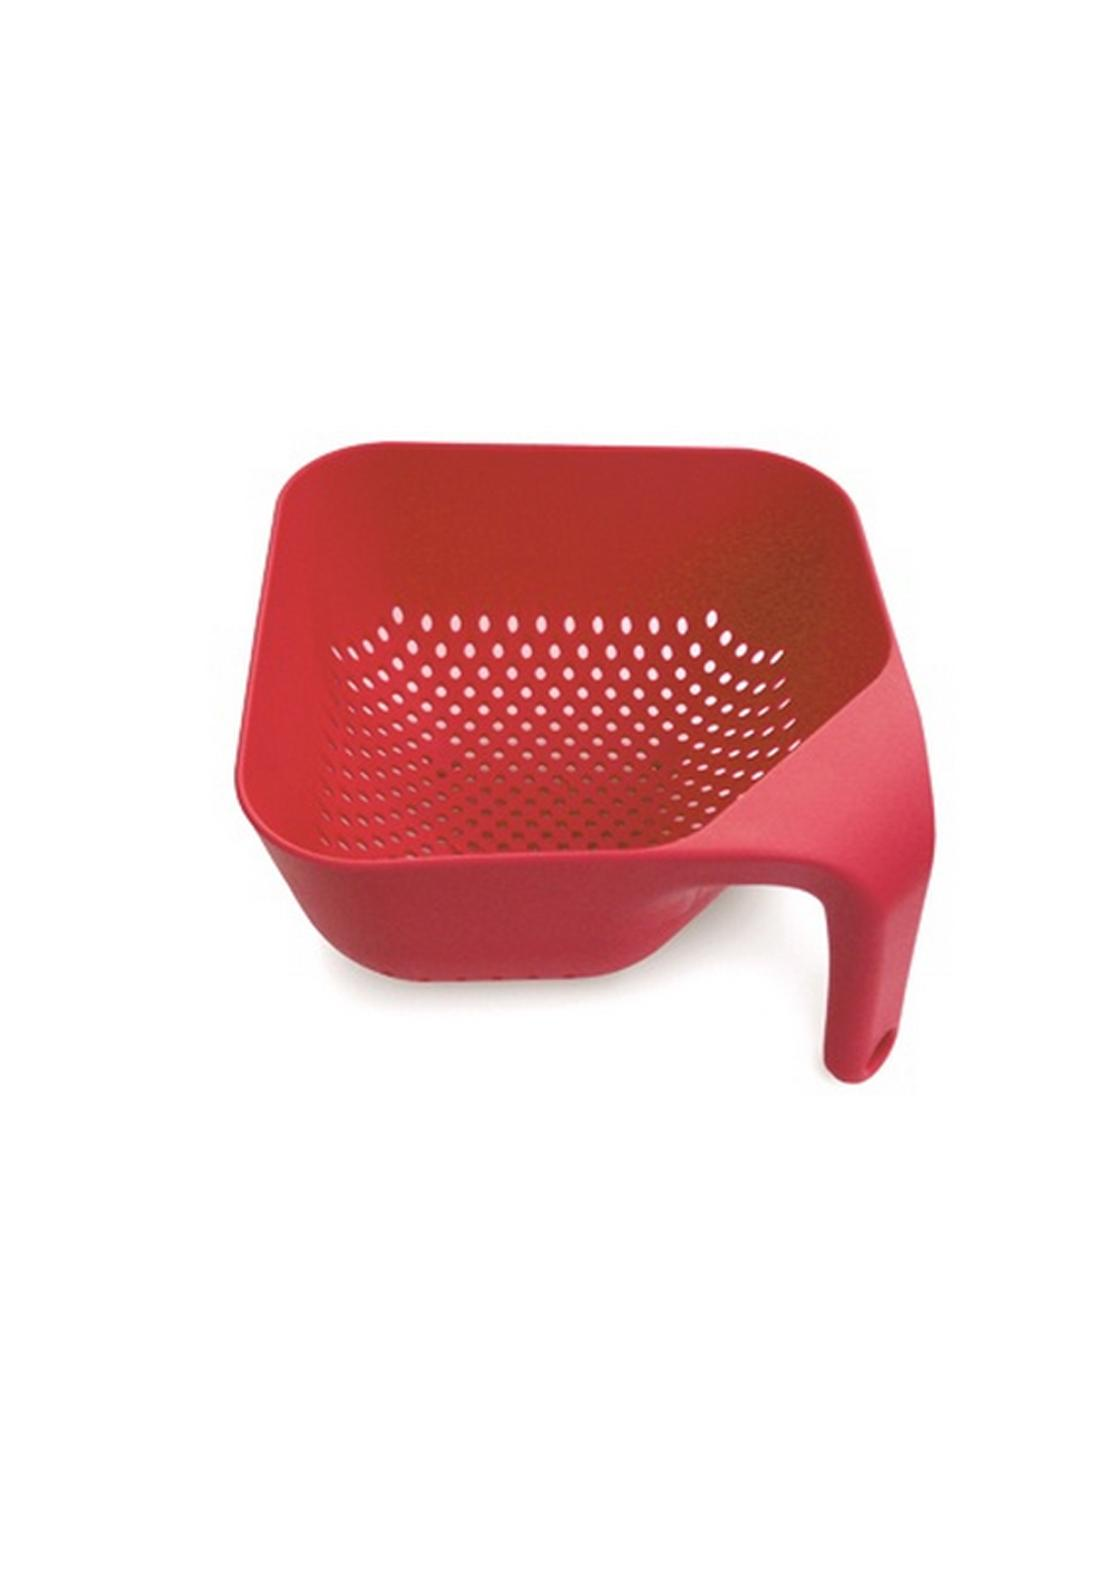 Joseph Joseph Square Colander Small, Red